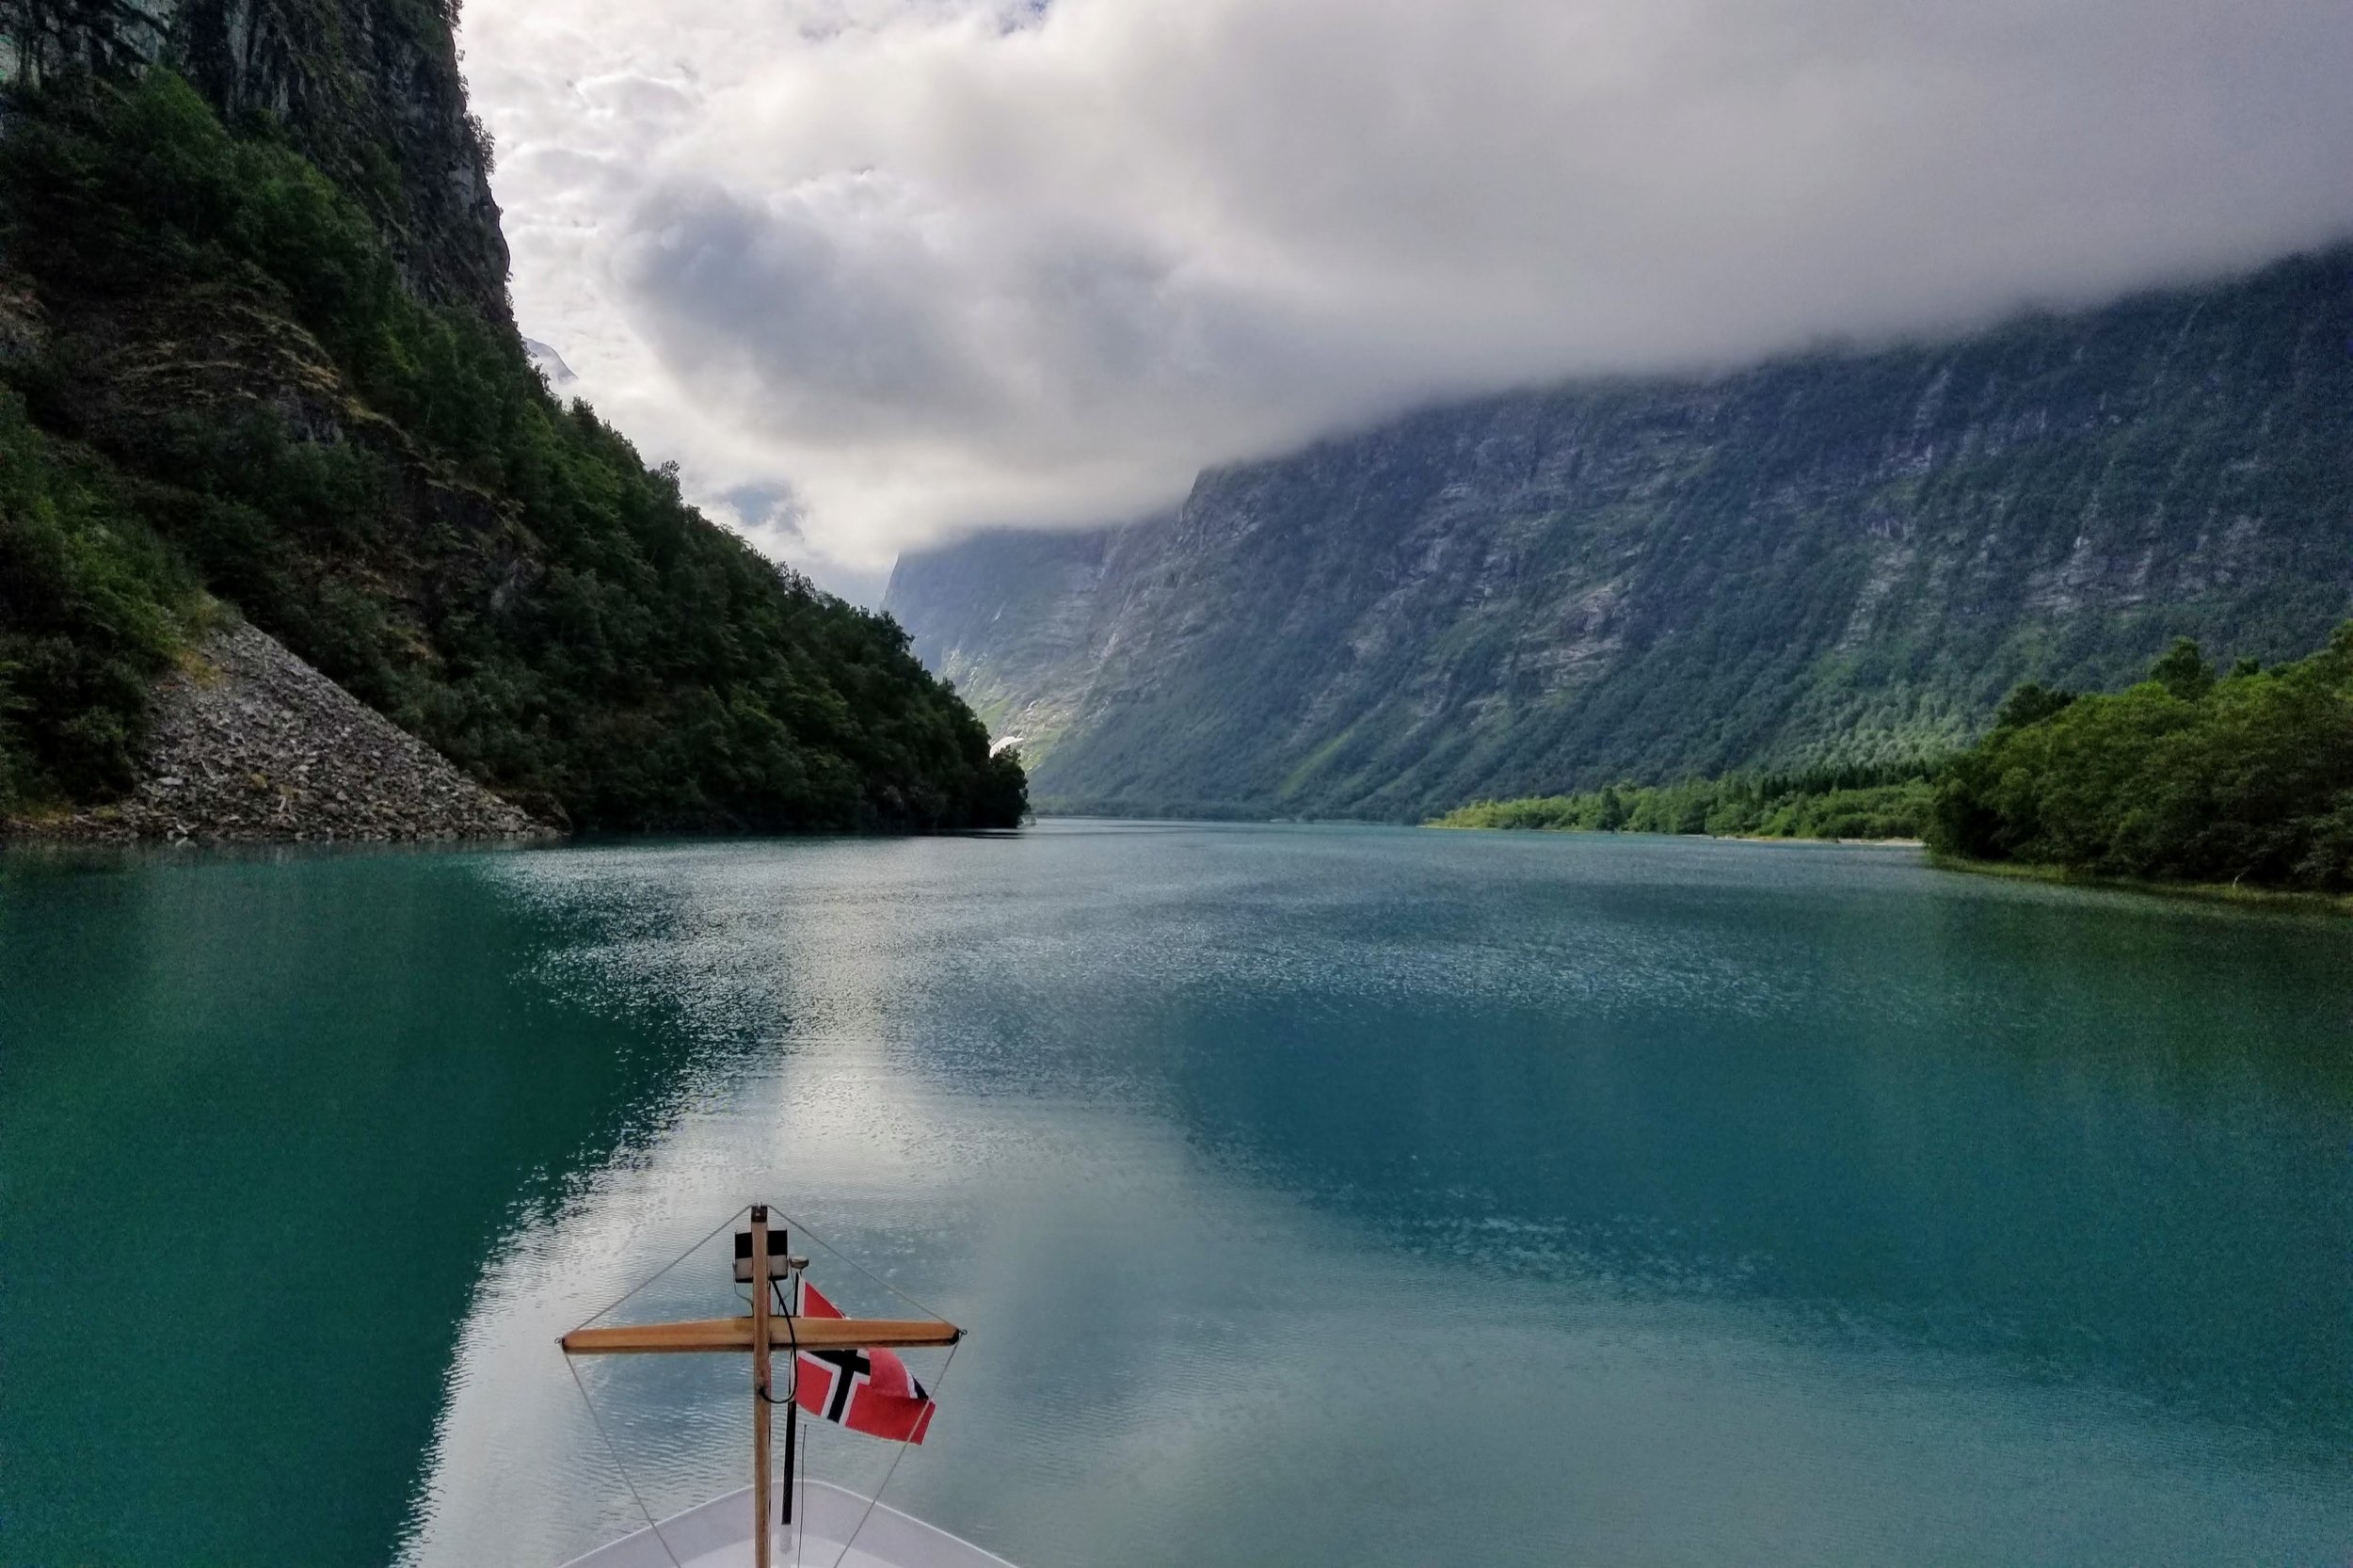 Norwegian Fjord - Discover Norway's extraordinarywonders on a Crystal Cruise